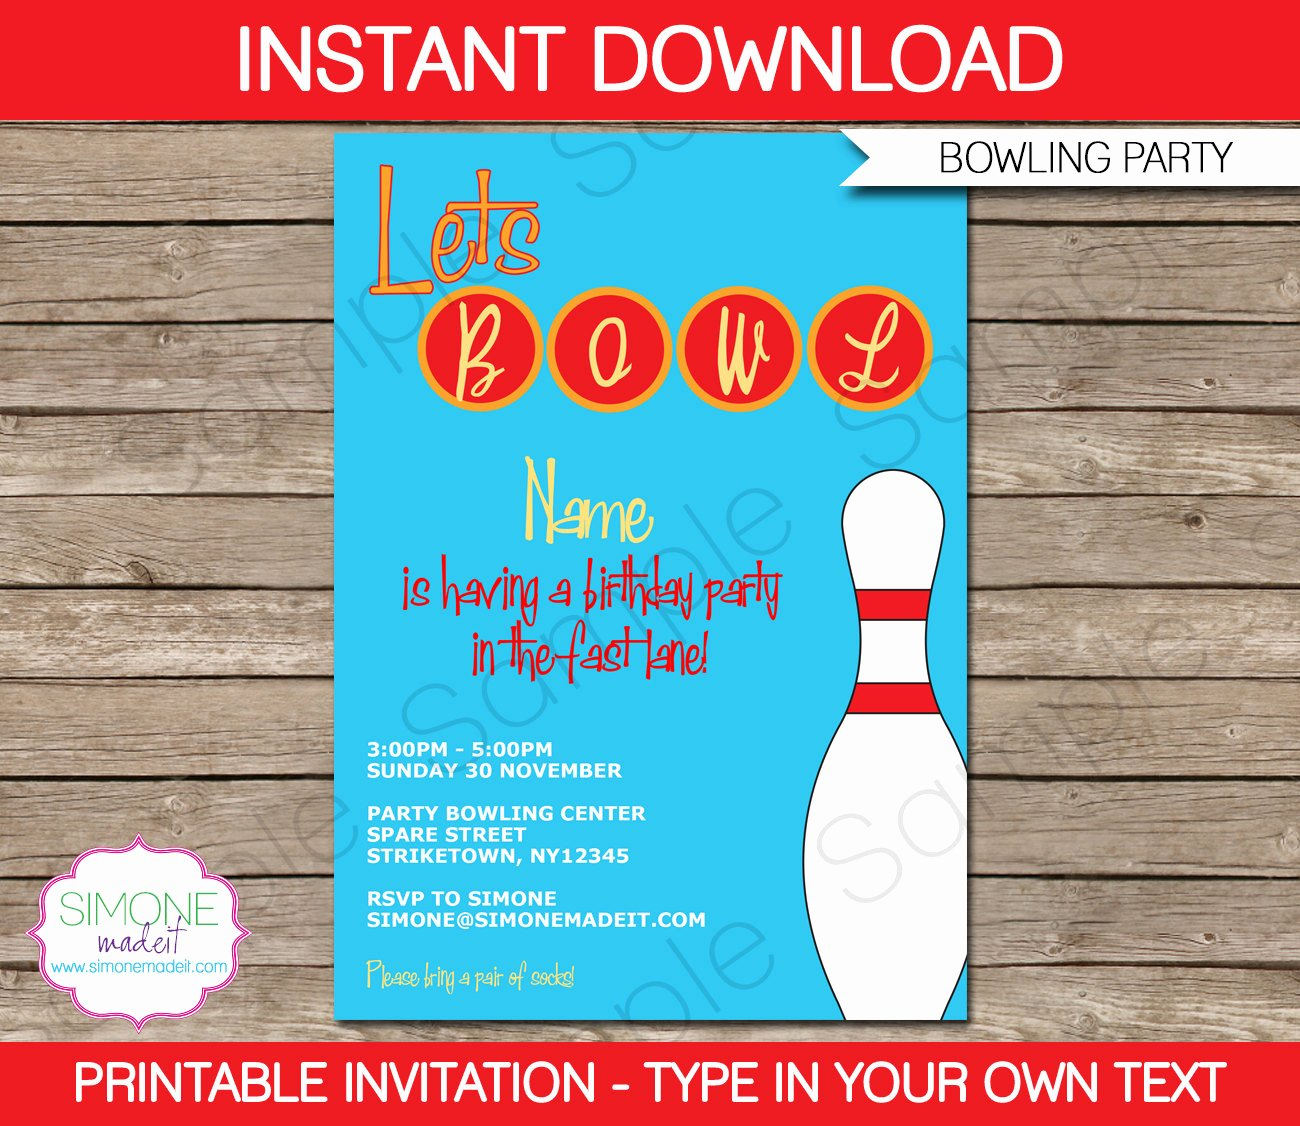 Bowling Party Invite Template Best Of Bowling Invitation Template Birthday Party Instant